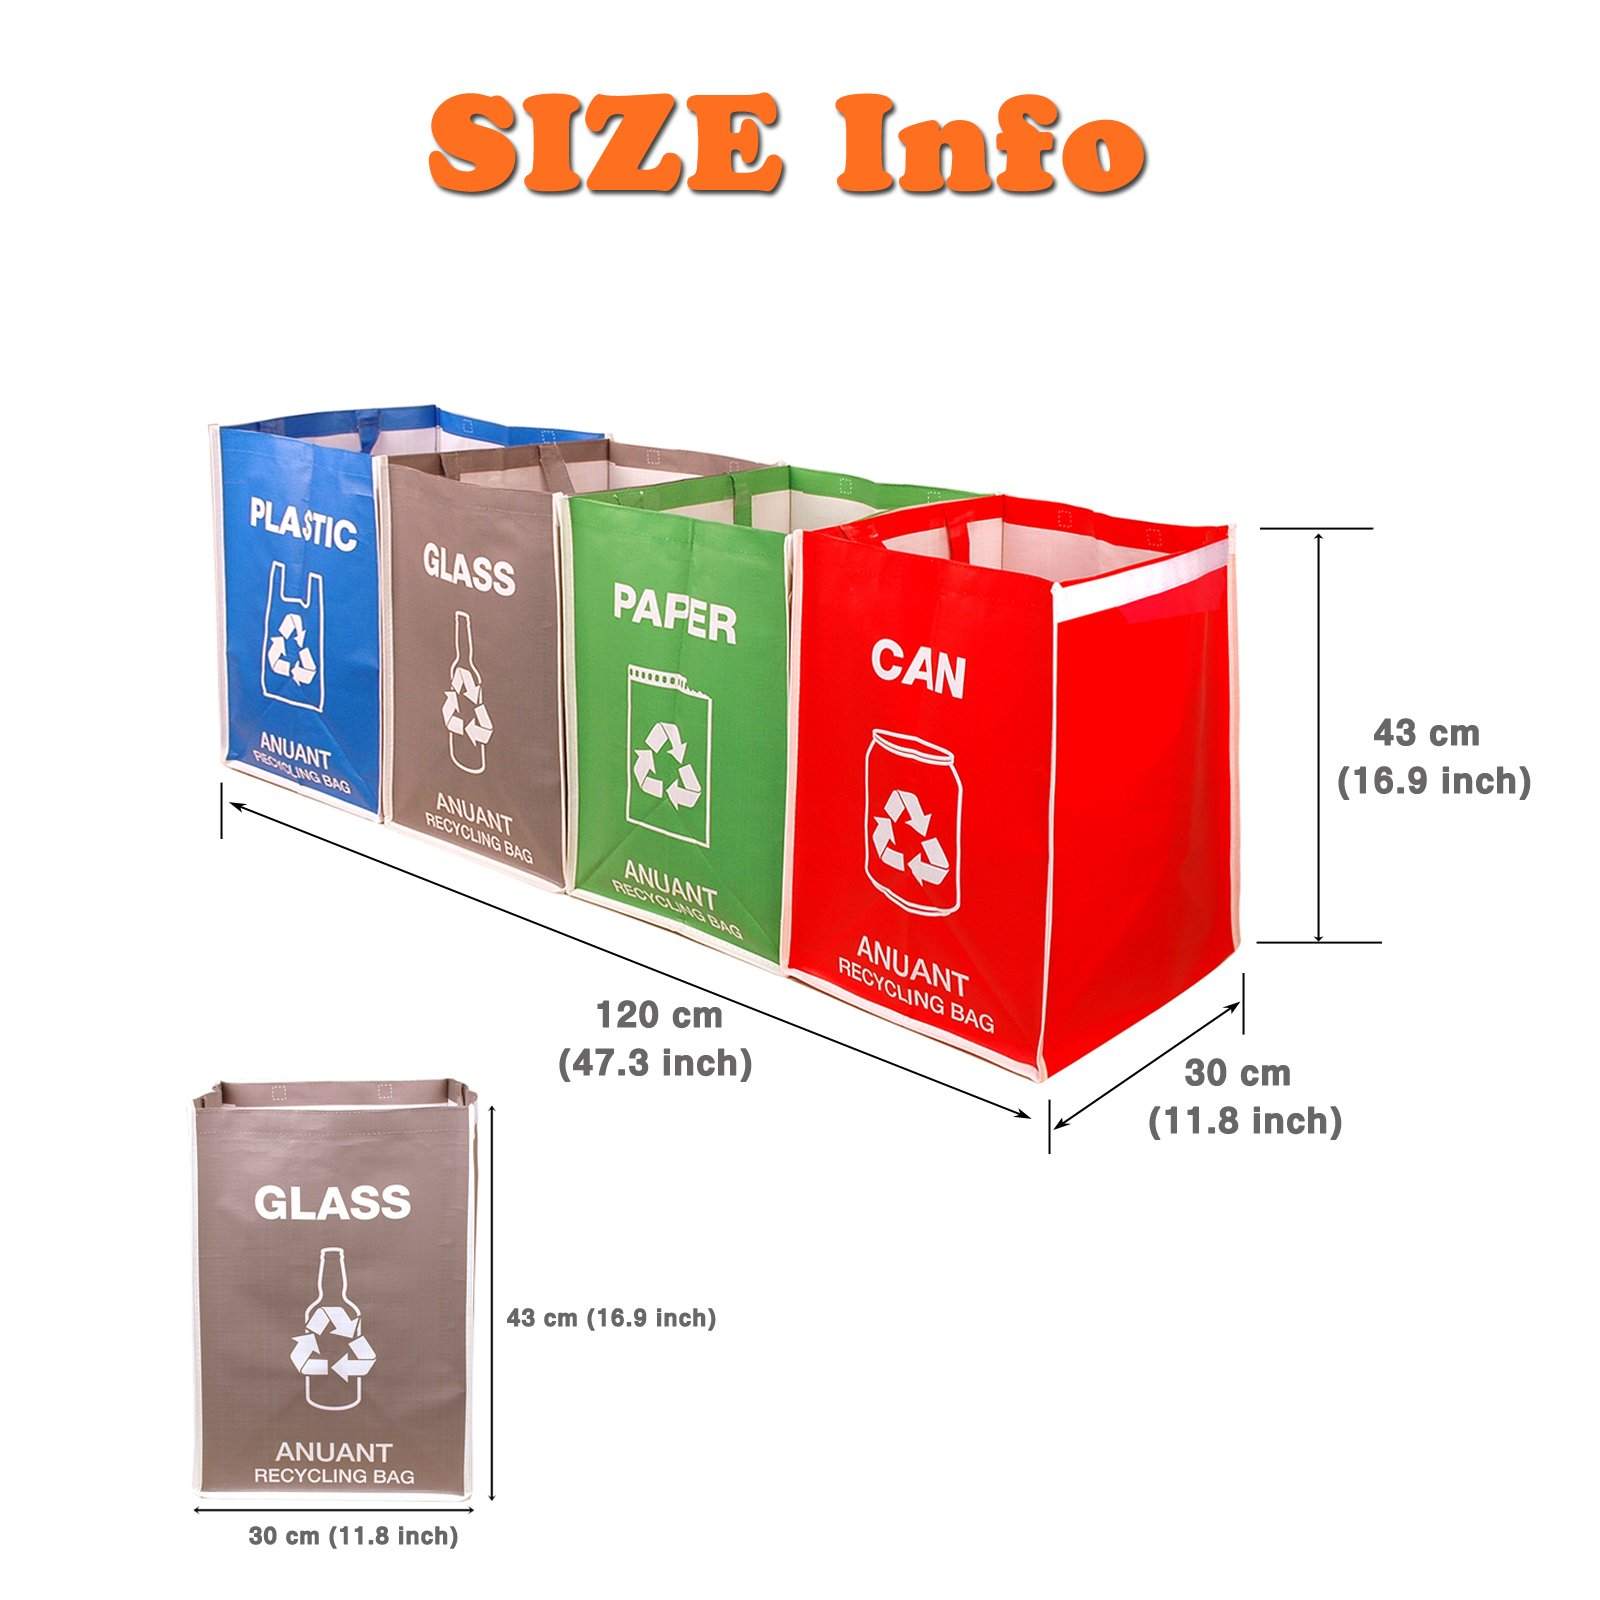 Separate Recycling Waste Bin Bags for Kitchen Office in Home - Recycle Garbage Trash Sorting Bins Organizer Waterproof Baskets Compartment Container Big Size 4 Bags Set by ANUANT (Image #7)